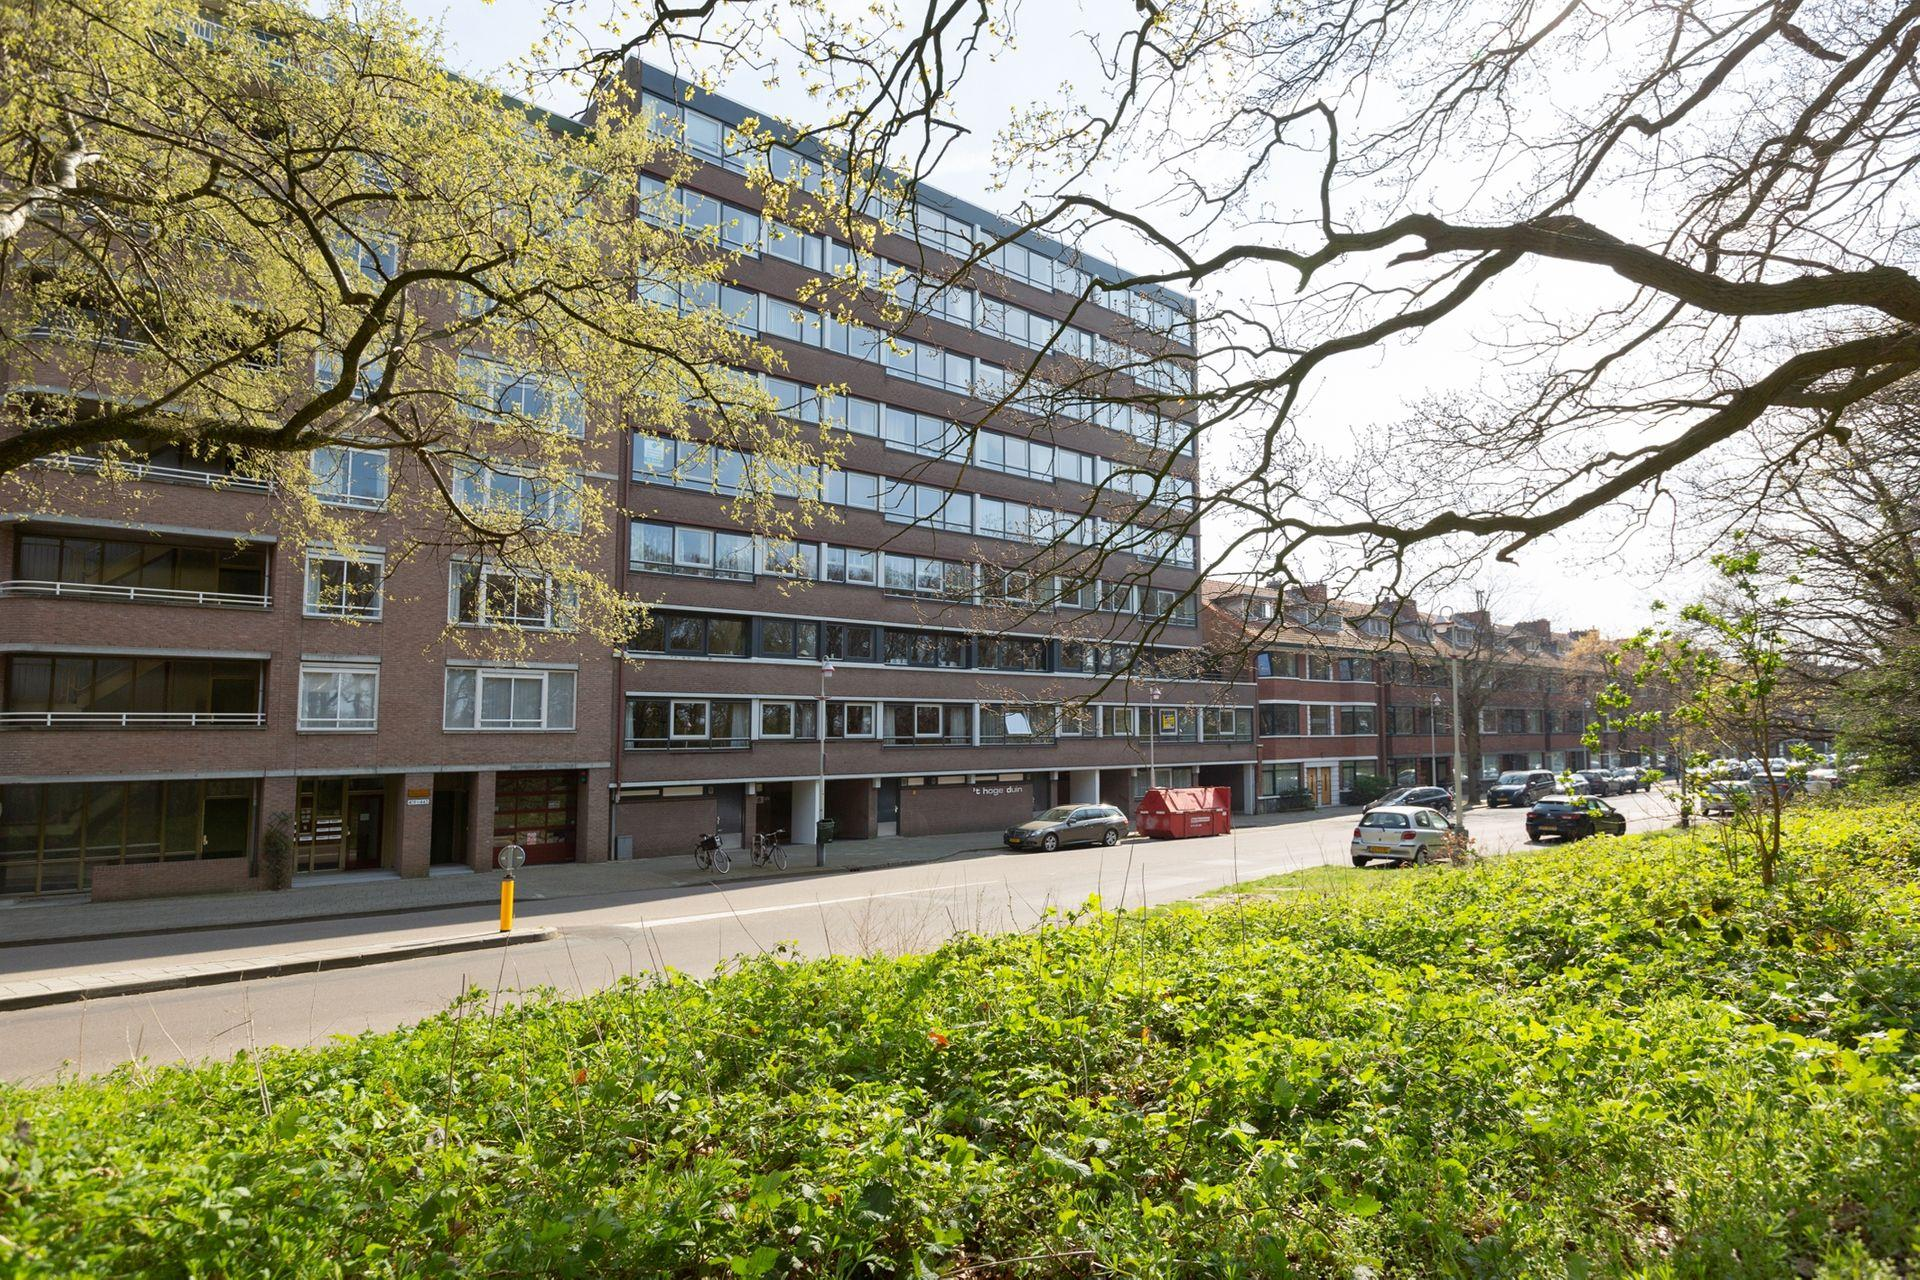 Bekijk de foto van: Waalsdorperweg 383, 2597 JA in Den haag - The Hague Real Estate Services